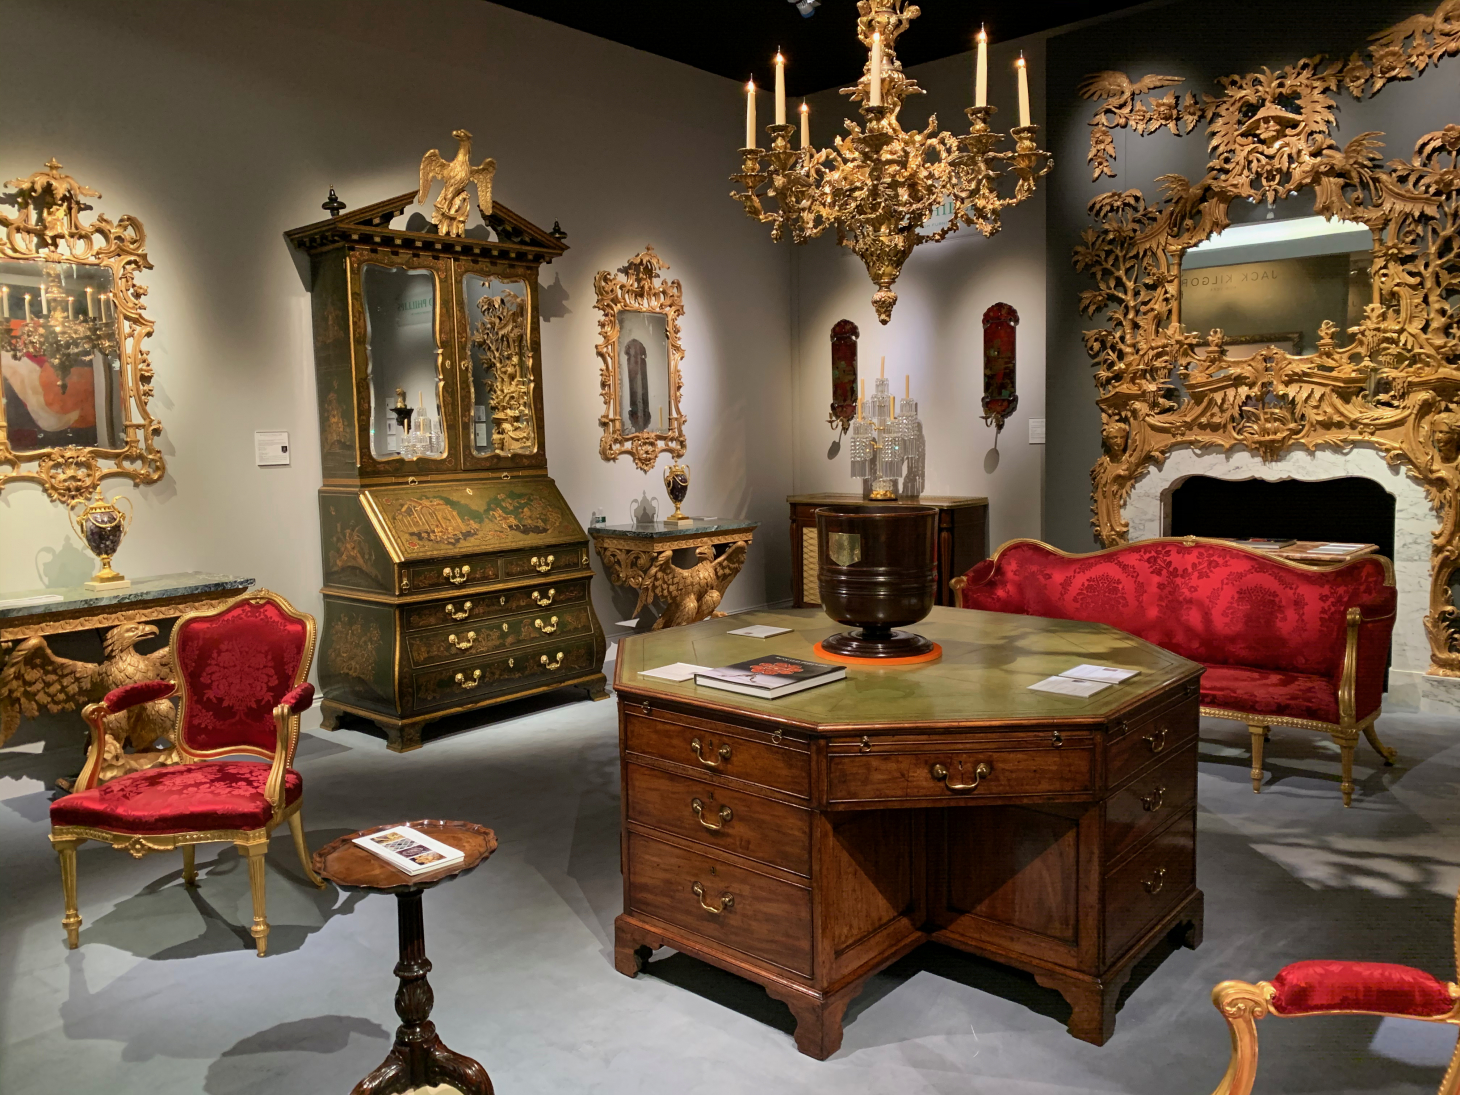 TEFAF 2019, Safe And Champagne-filled With A Few Elements